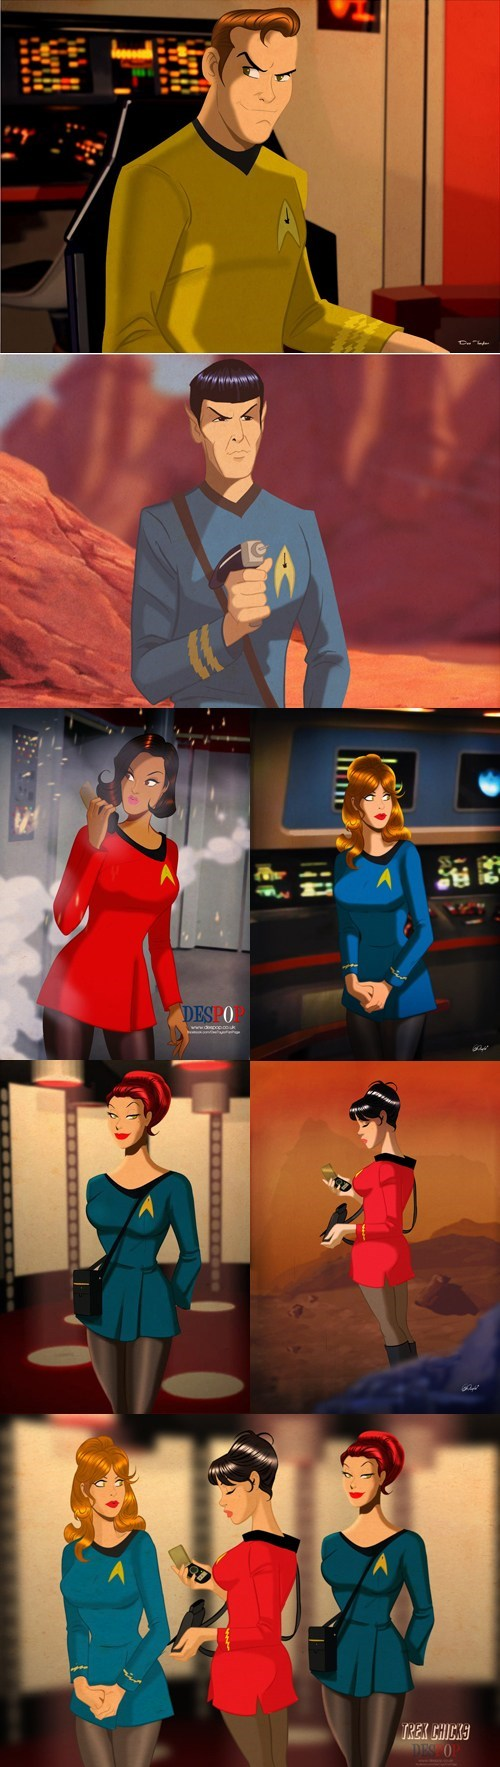 Captain Kirk,Spock,Fan Art,uhura,pin ups,Star Trek